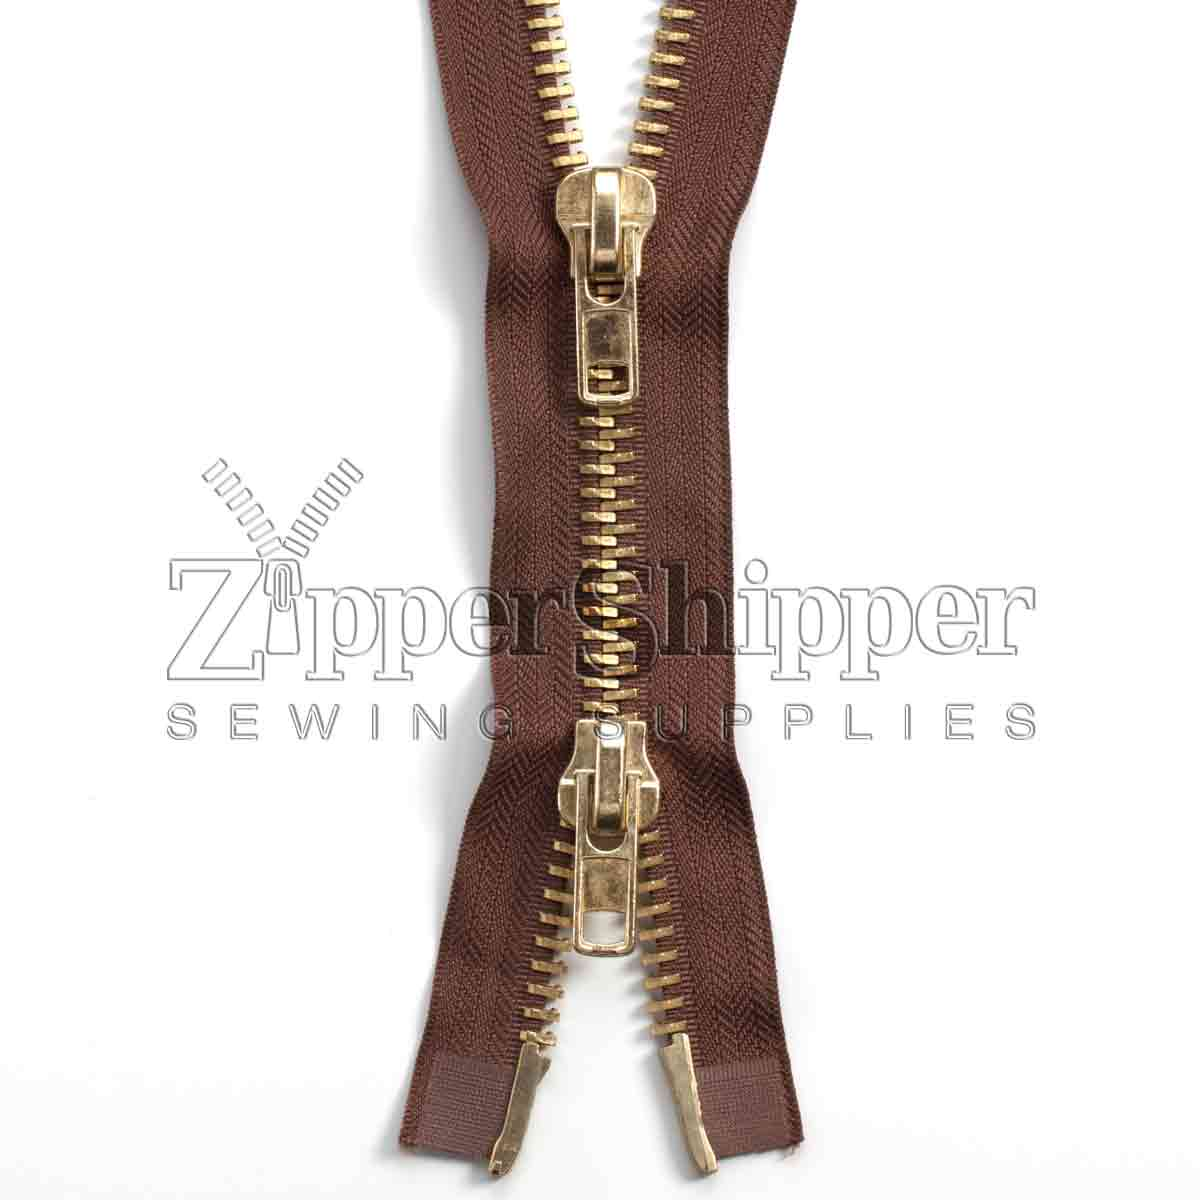 #10 Brass Heavy Duty Two-Way Separating (Jacket) Zipper - ZIPBR10-200